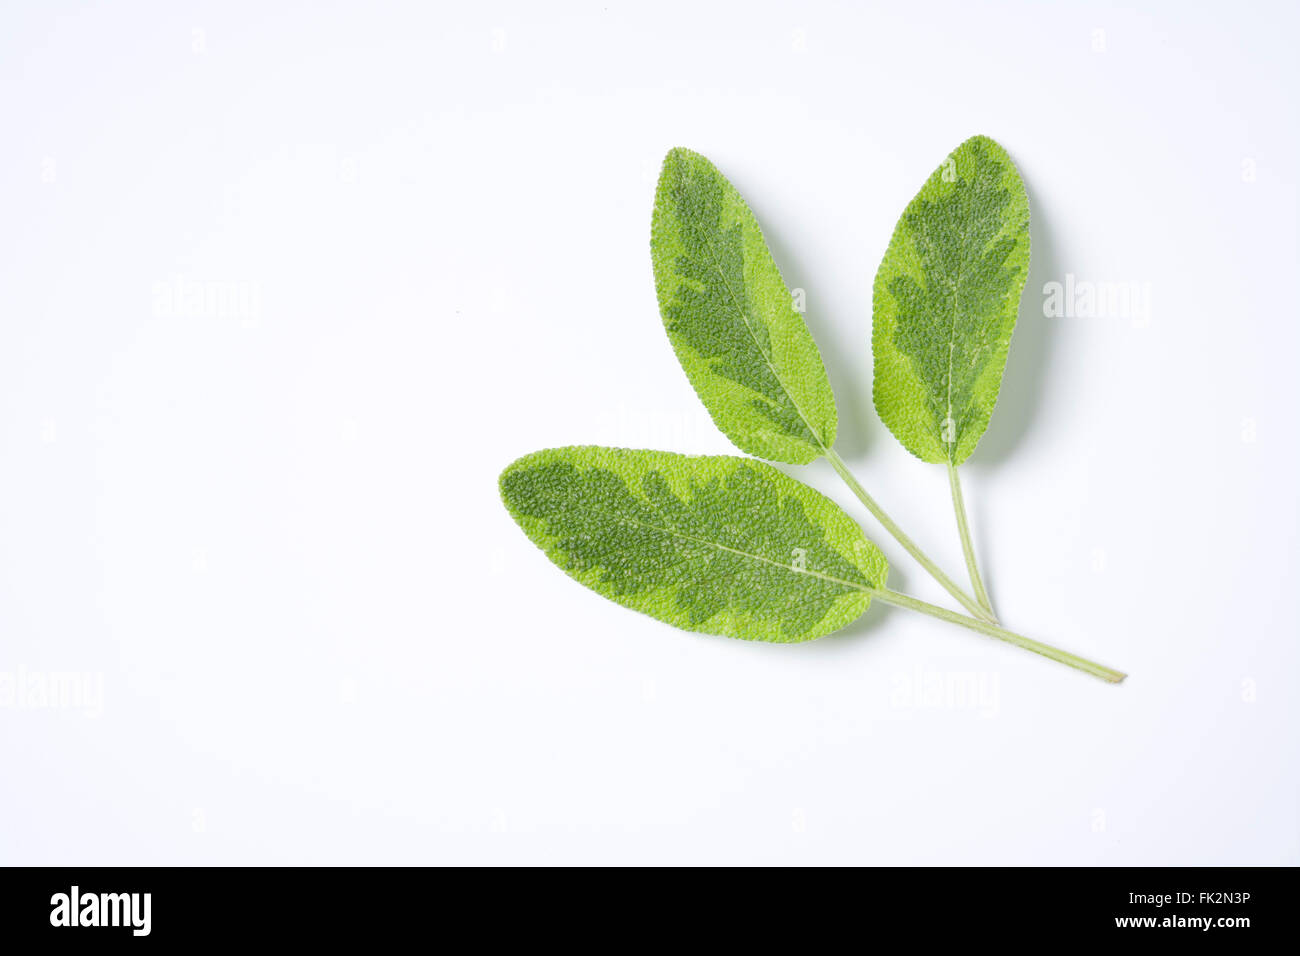 Fresh Green Salvia Officinalis Leaves On White Background - Stock Image